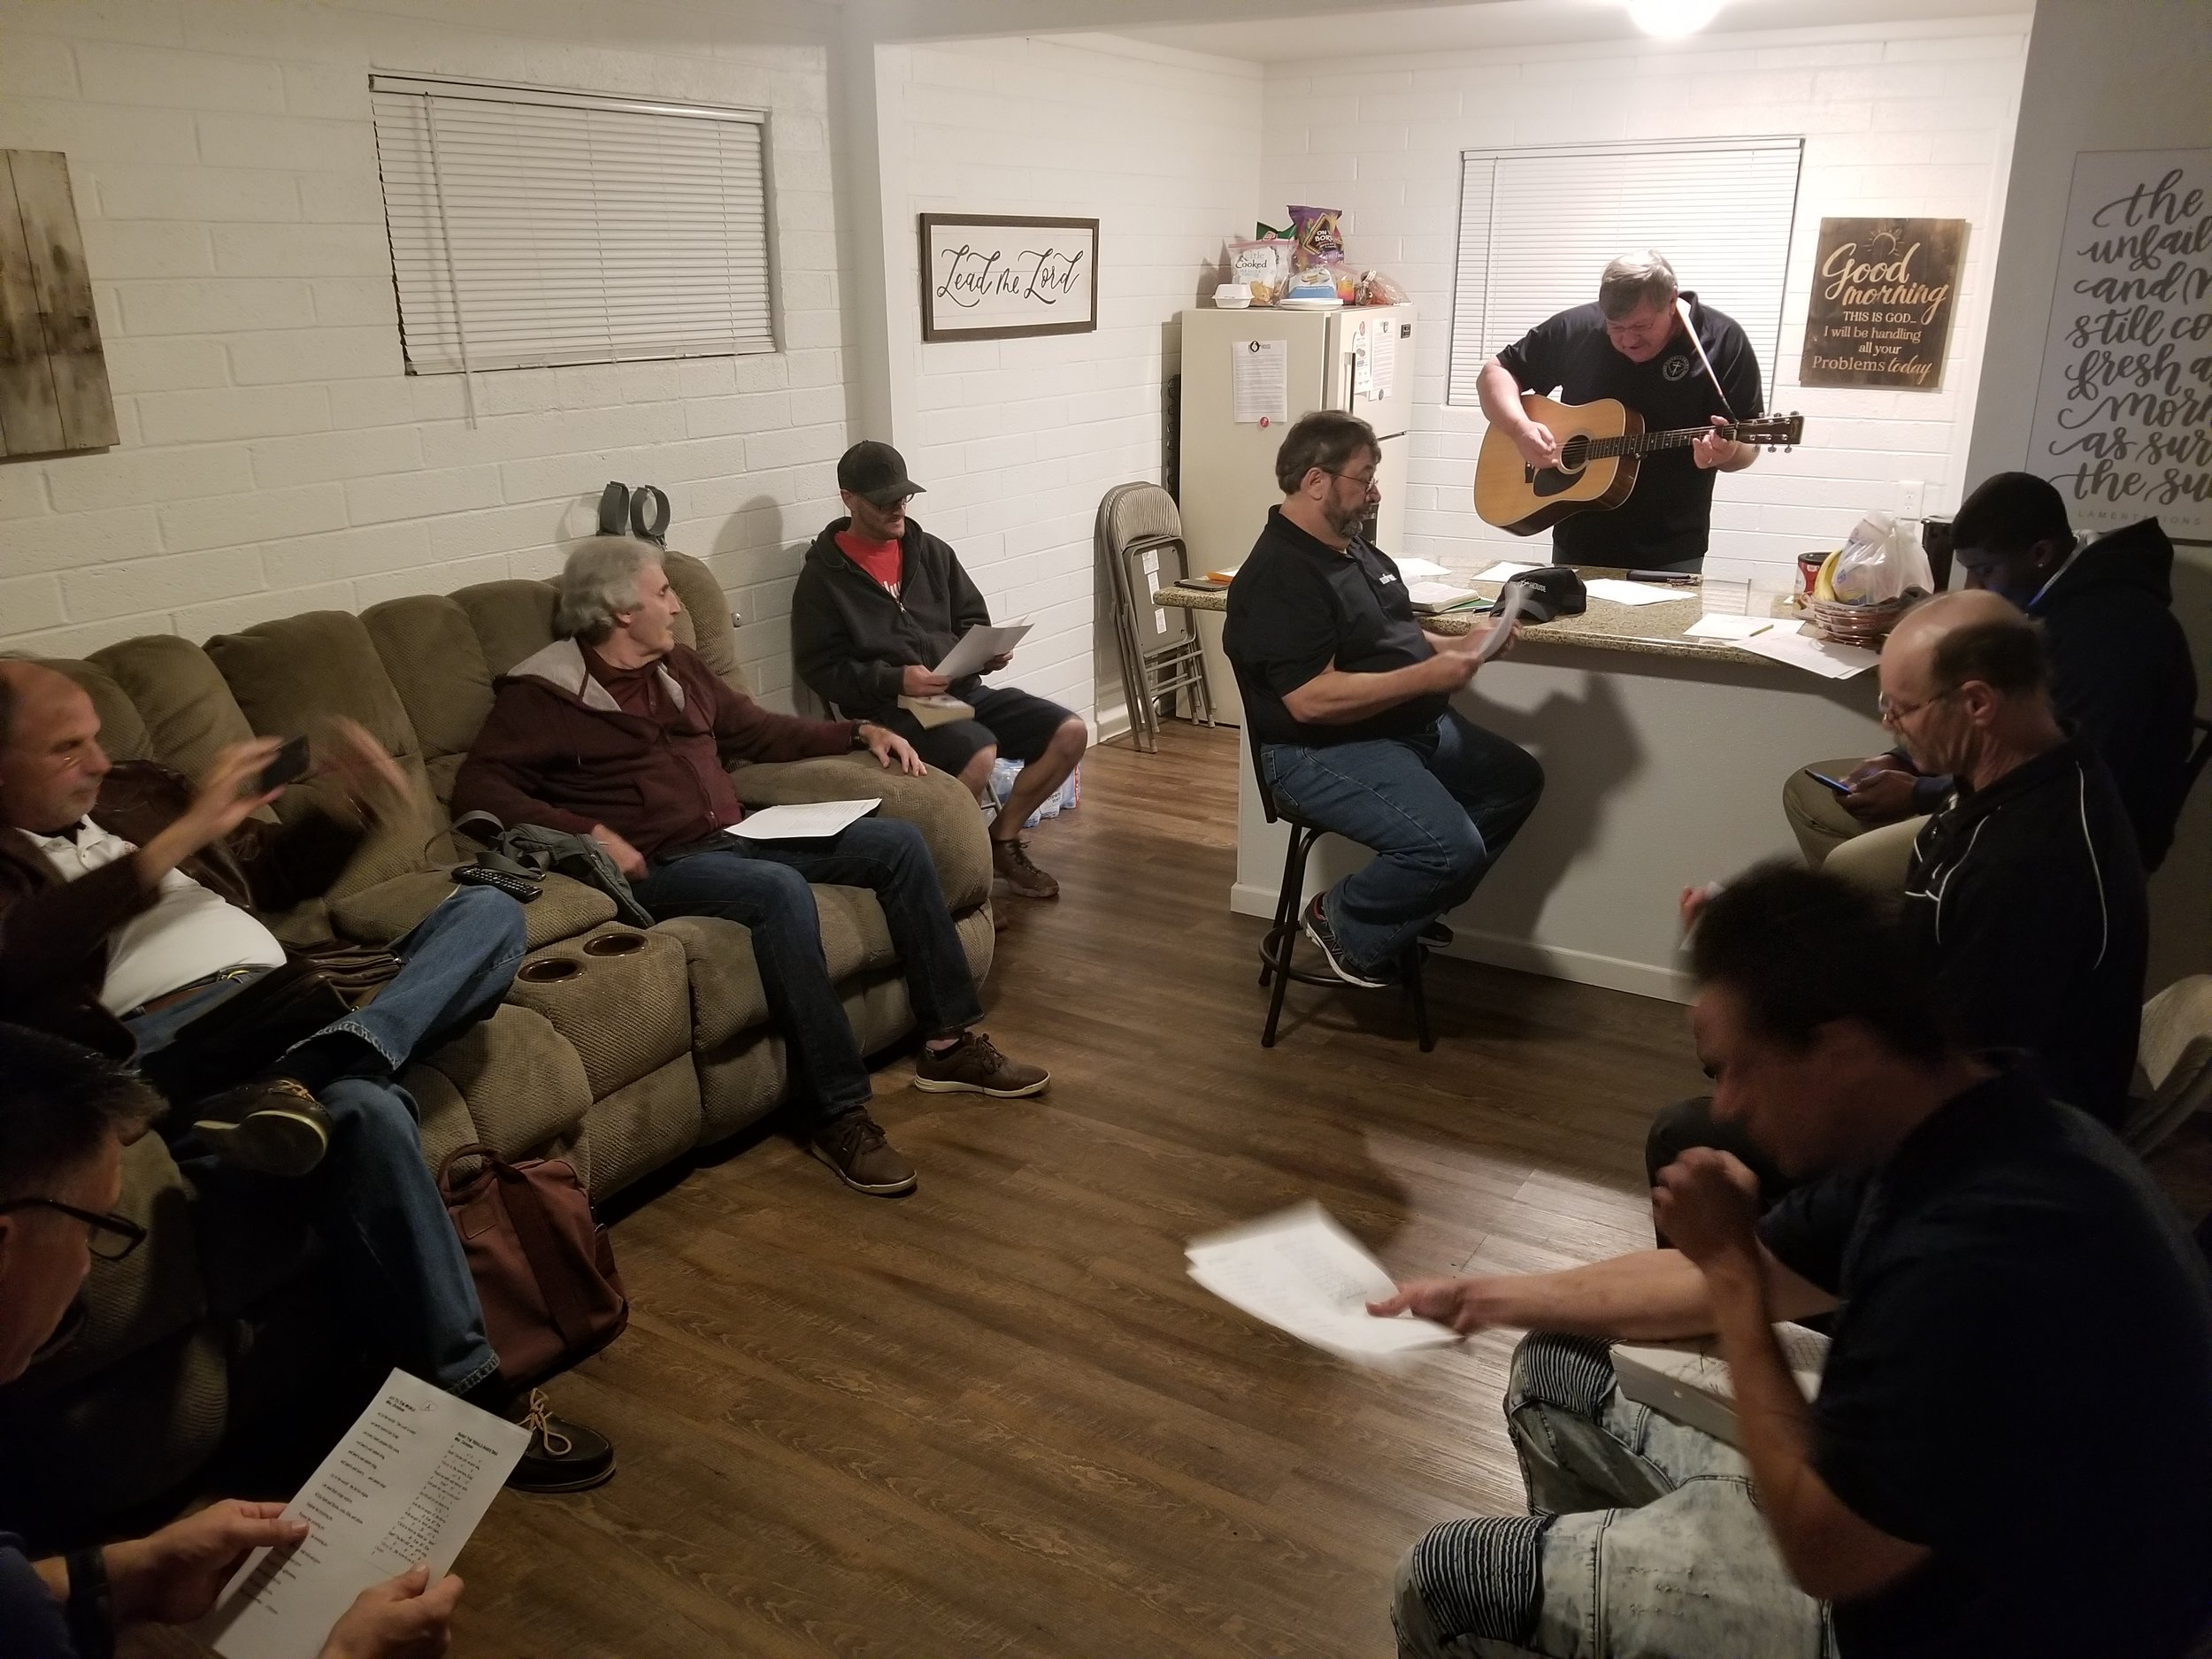 Little worship at Bible study